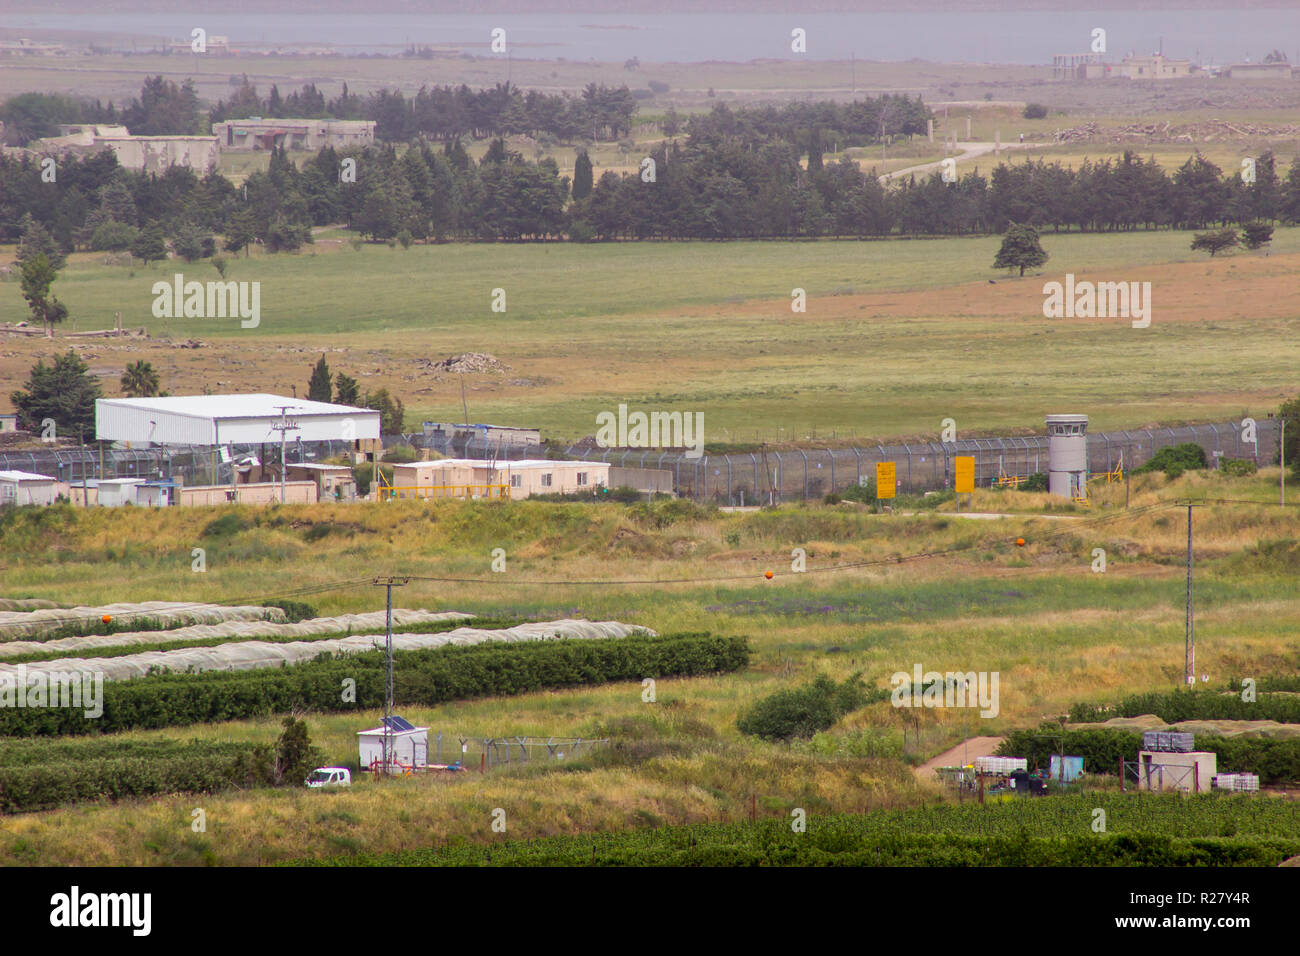 4 May 2018 Syrian real estate close to the Israeli border as seen from the Northern Golan Heights in North East Israel - Stock Image